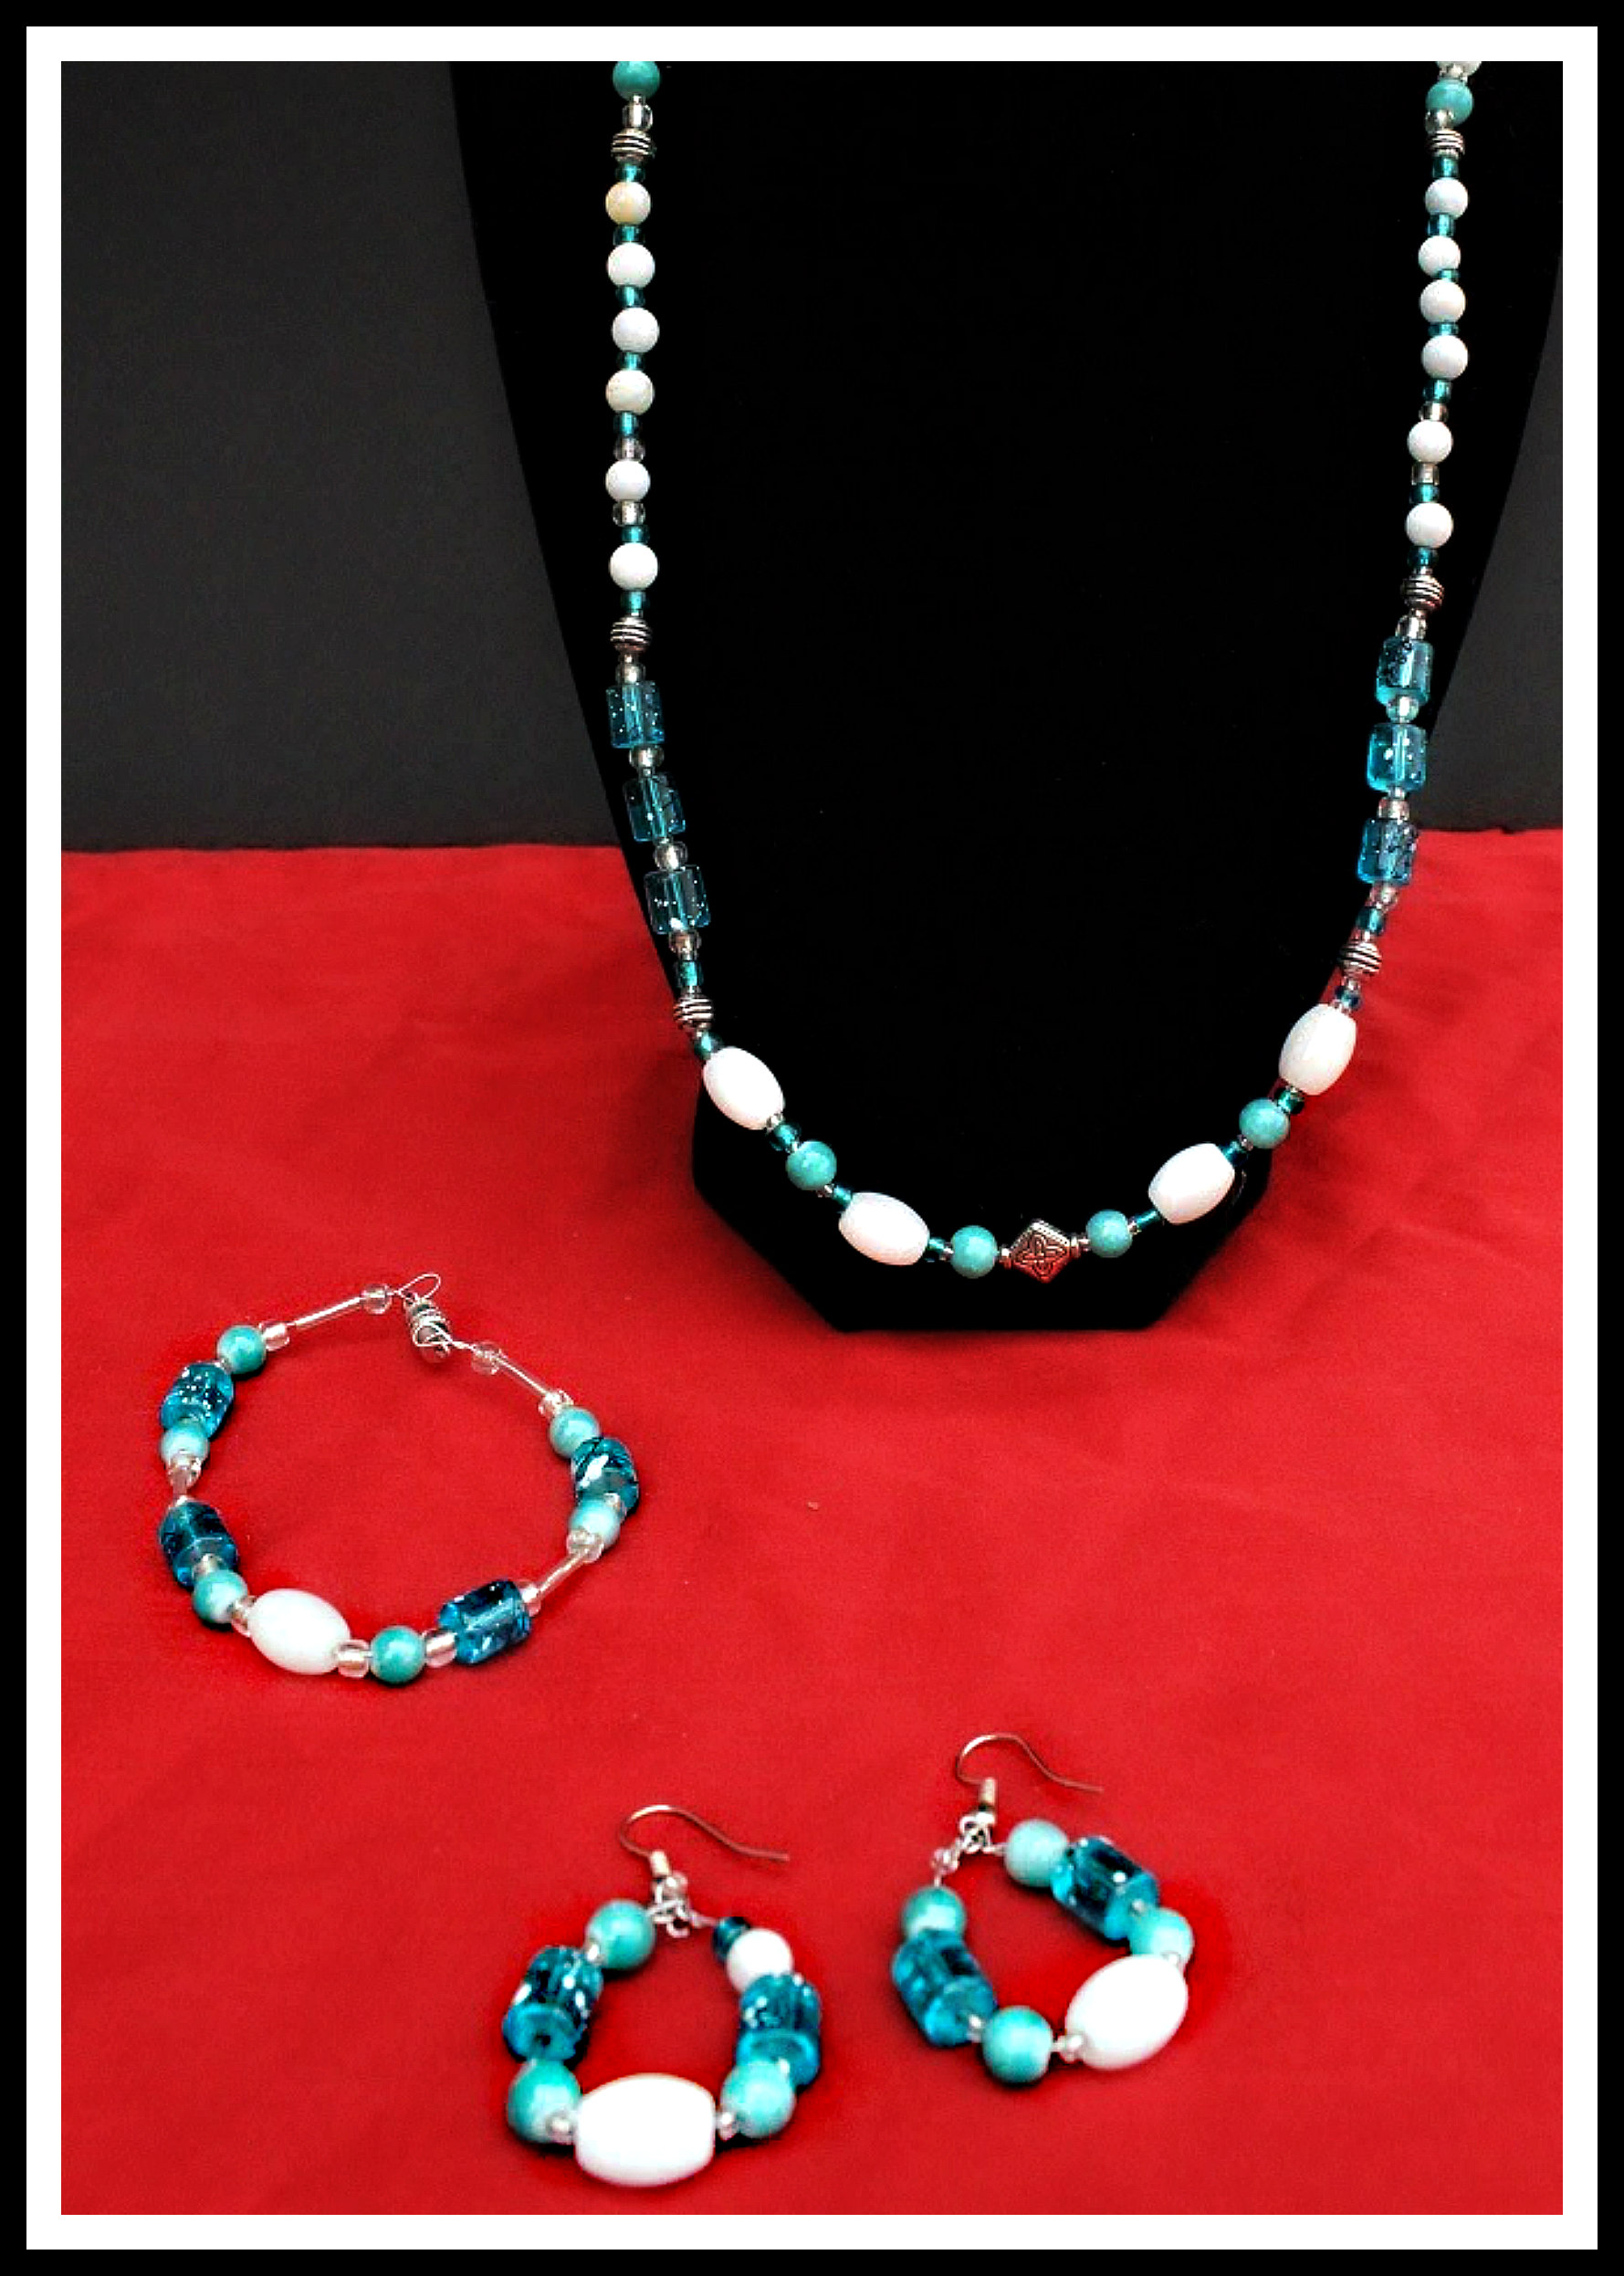 Necklace, bracelet and earrings $35 Eddie Raines 2016 Glass and metal beads